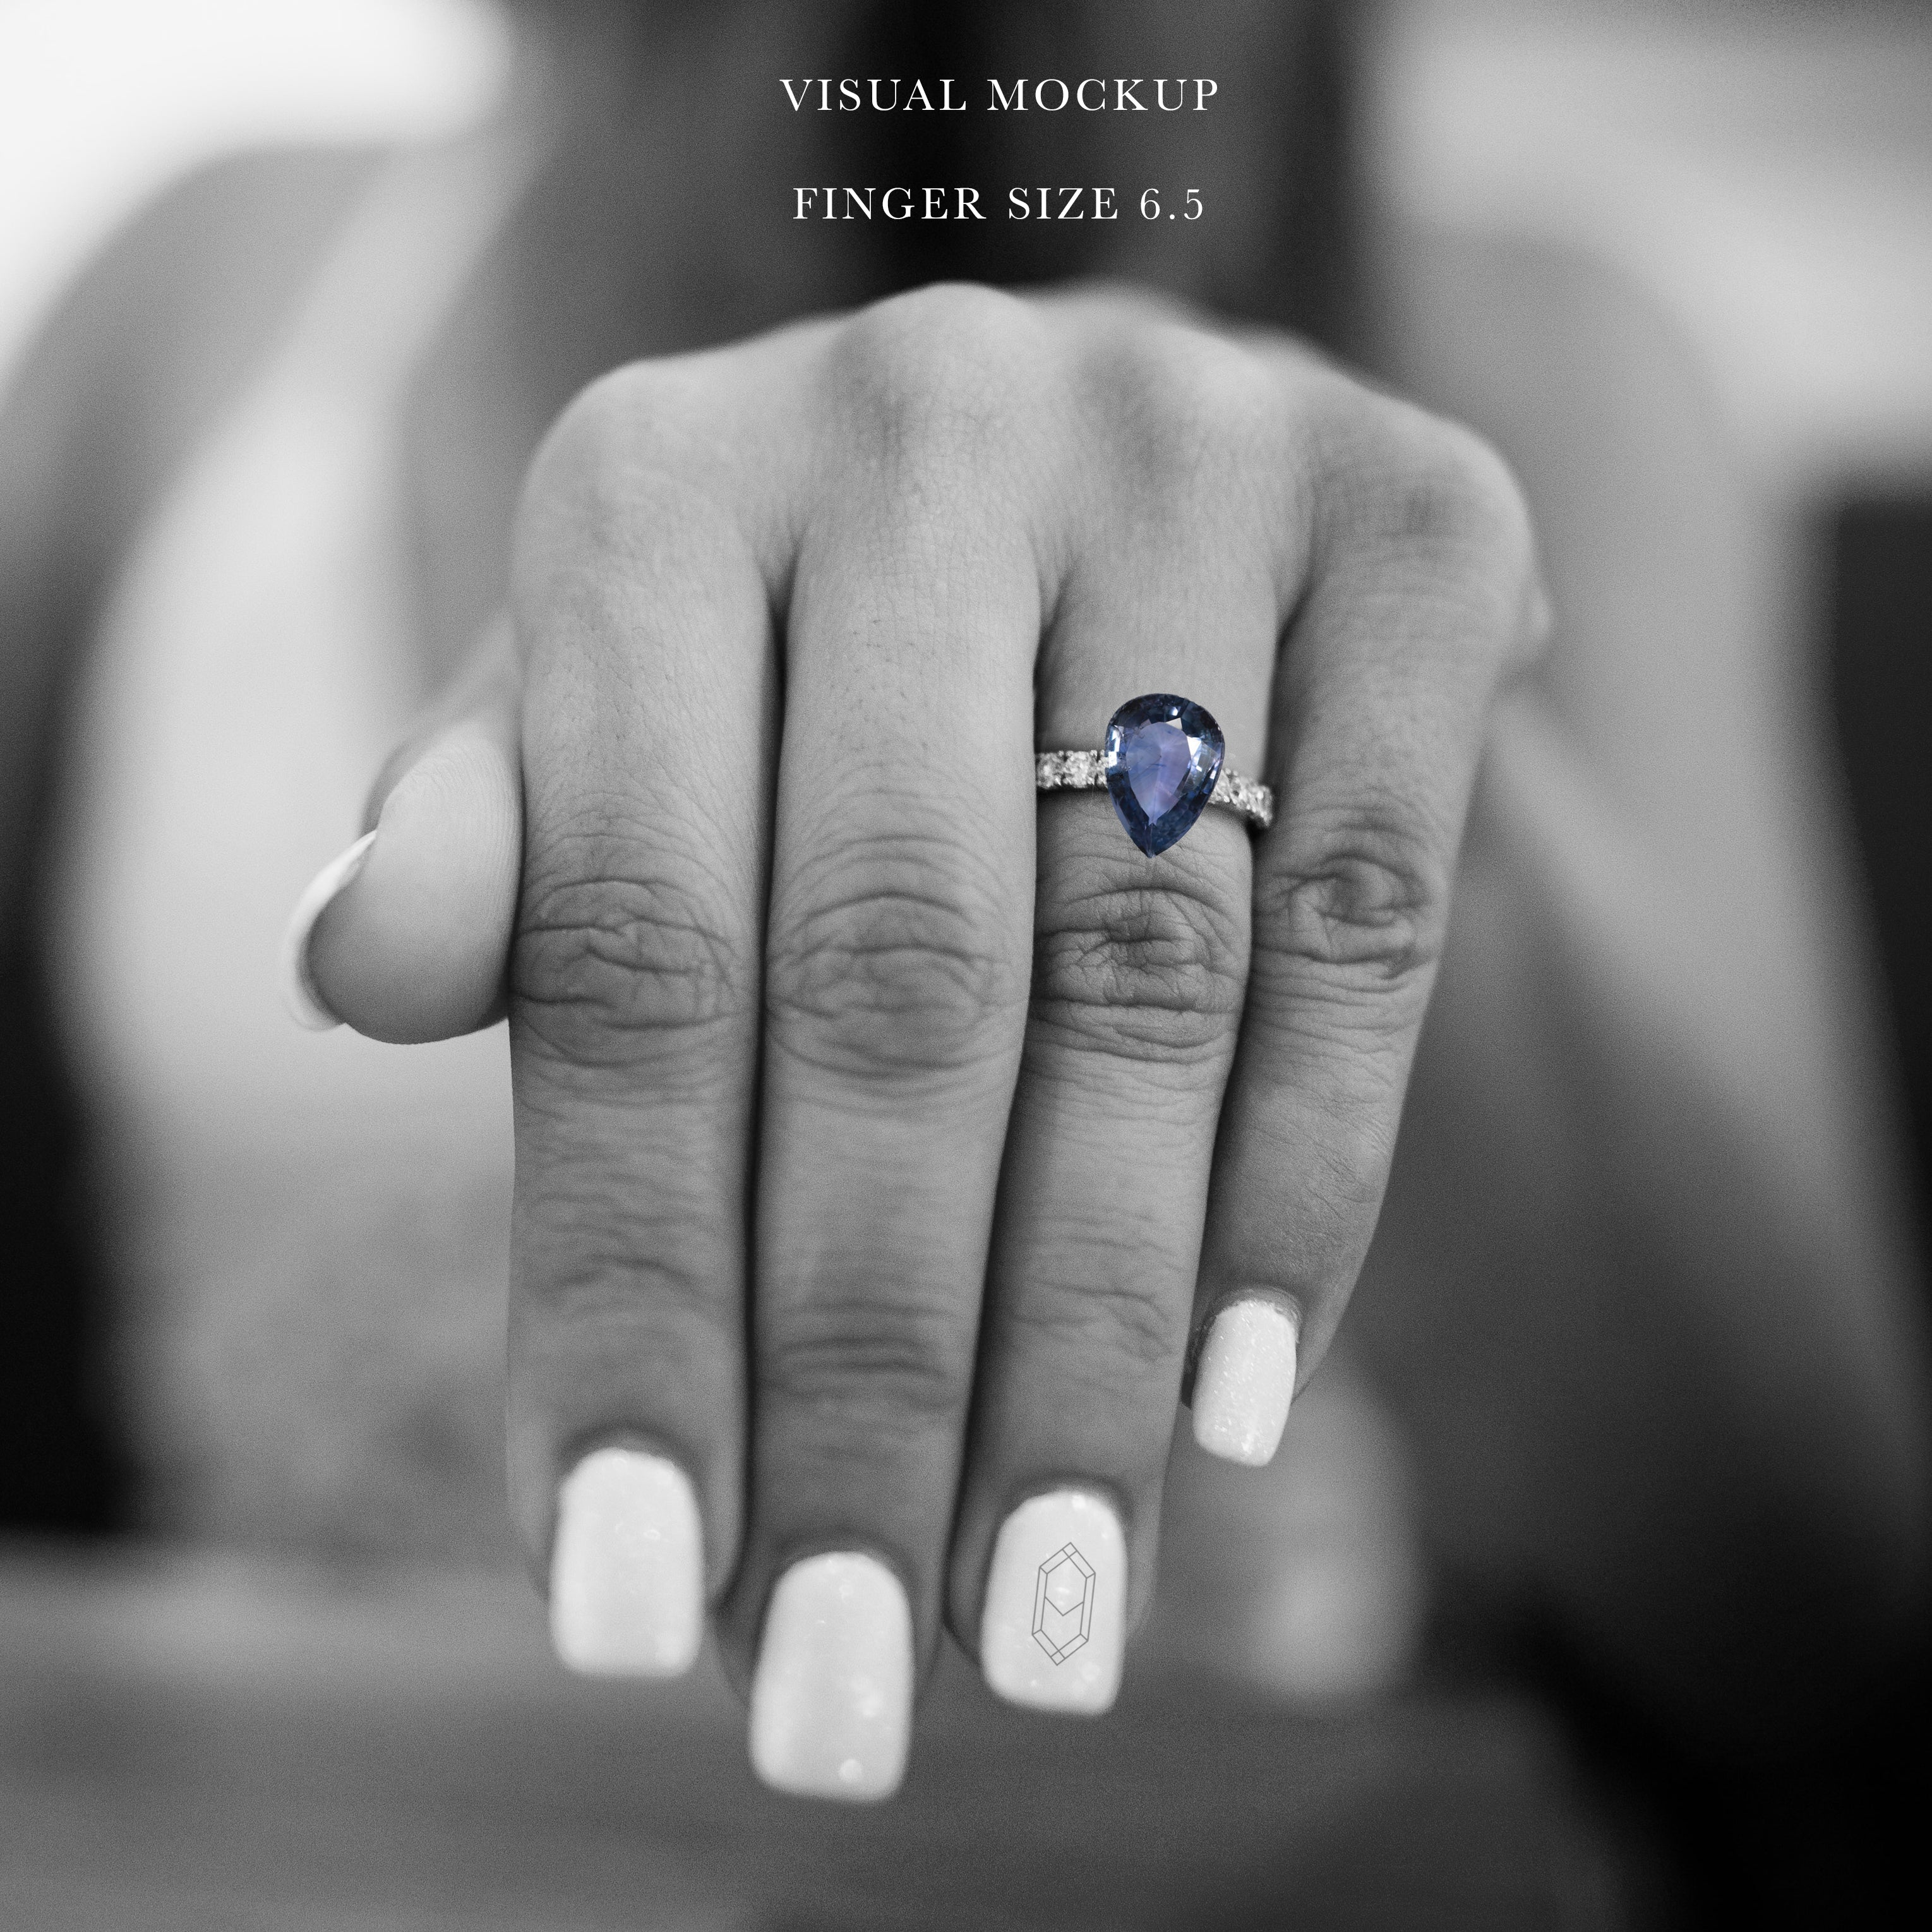 2.90 carat blue pear sapphire - custom work - inventory code: BPSA290 - Salt & Pepper Celestial Diamond Engagement Rings and Wedding Bands  by Midwinter Co.